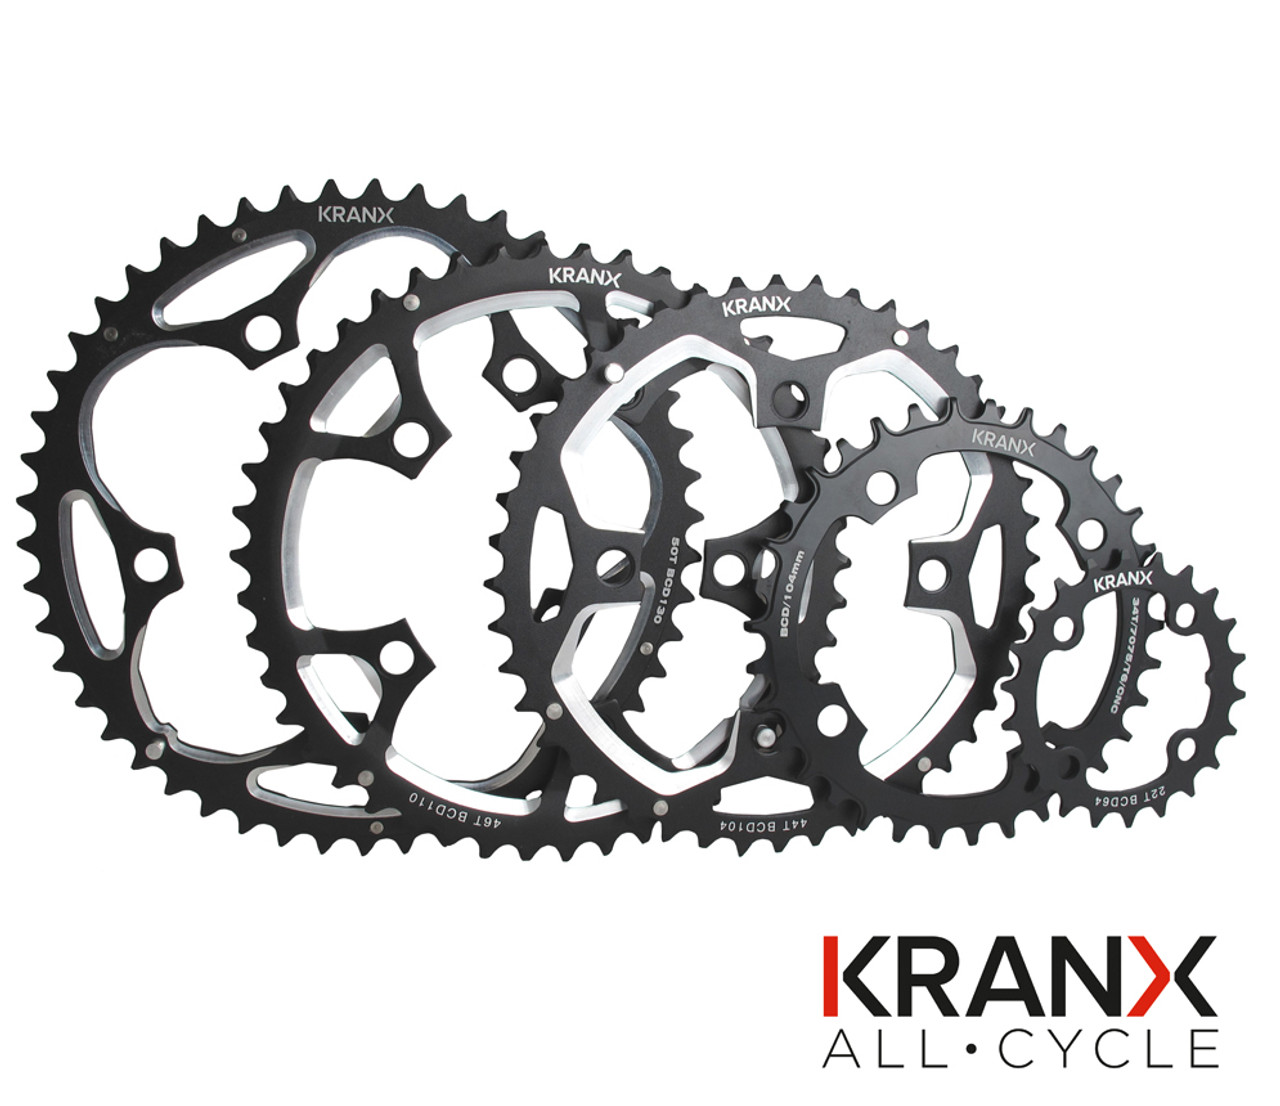 KranX 130BCD Alloy 9/10 Speed Chainring in Black  All Sizes